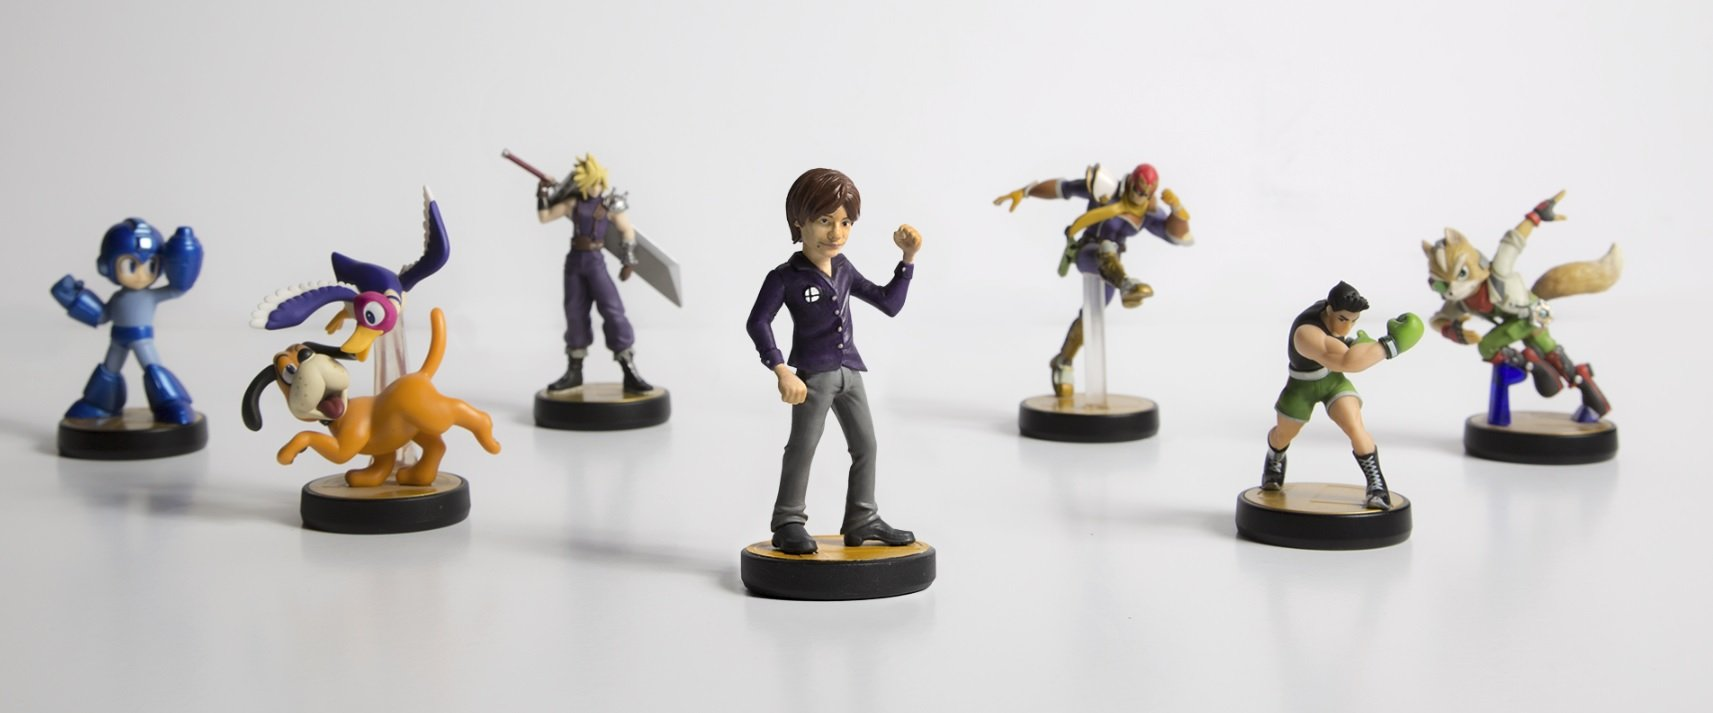 On the eve of Super Smash Bros. Ultimate's launch, someone made a Sakurai amiibo screenshot